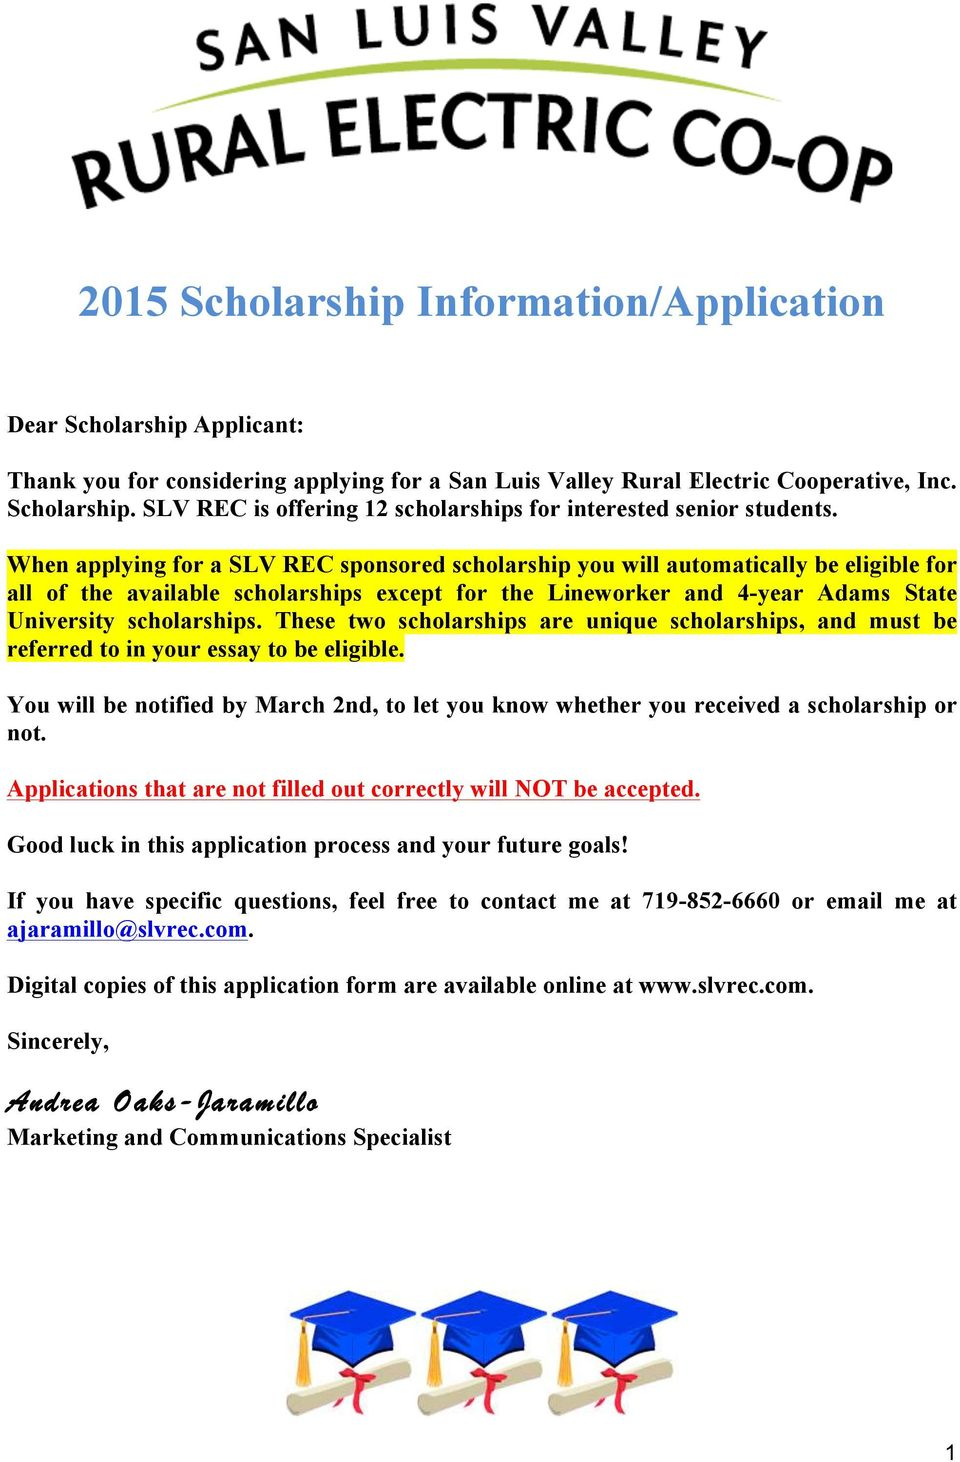 These two scholarships are unique scholarships, and must be referred to in your essay to be eligible. You will be notified by March 2nd, to let you know whether you received a scholarship or not.